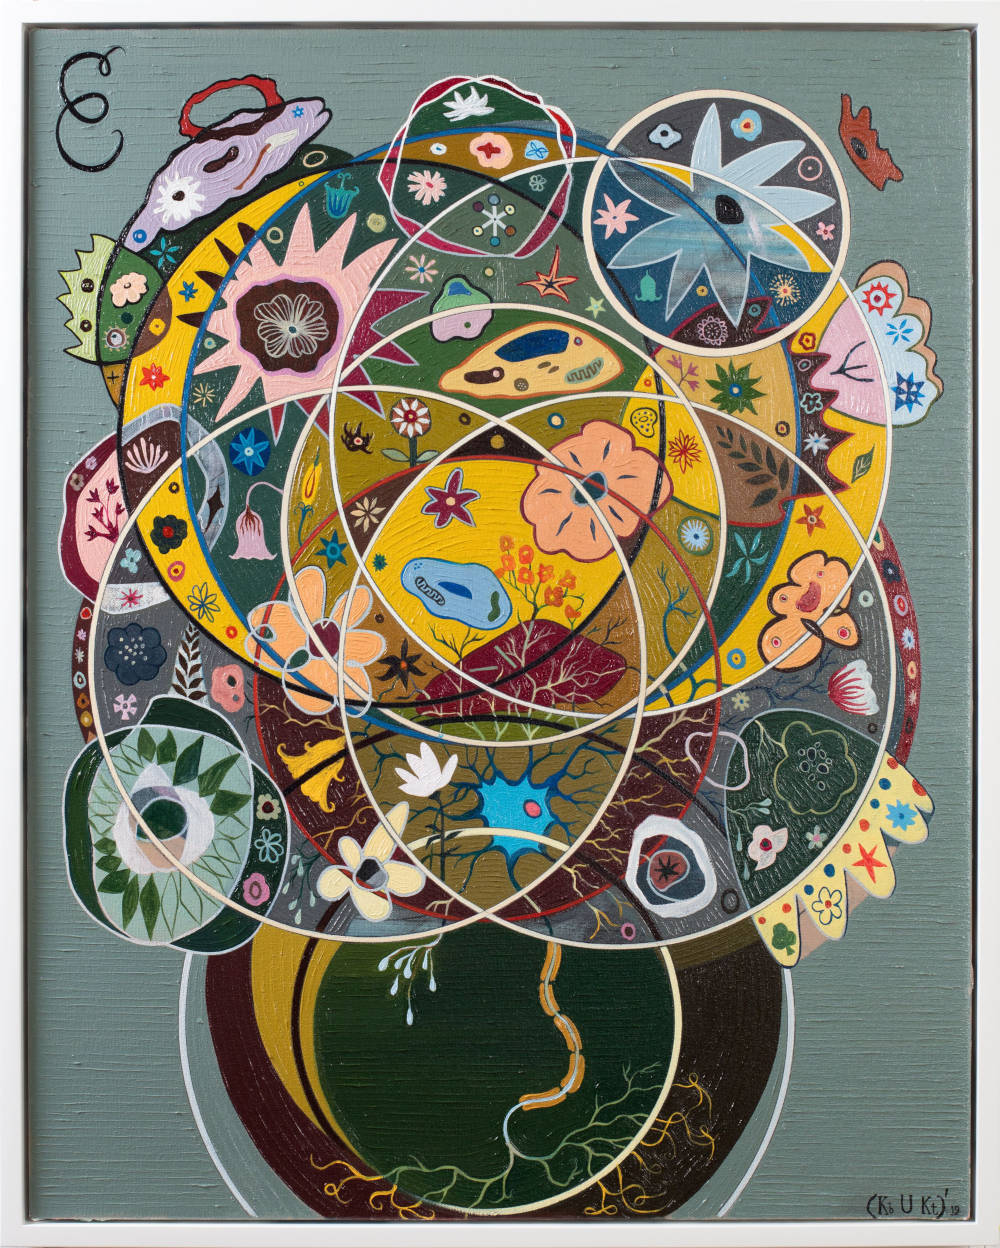 Keith Tyson, Seed of Consciousness, 2019. Oil on canvas 78.6 x 63.1 cm / 31 x 24 7/8 in (framed) © Keith Tyson. Courtesy of the artist and Hauser & Wirth